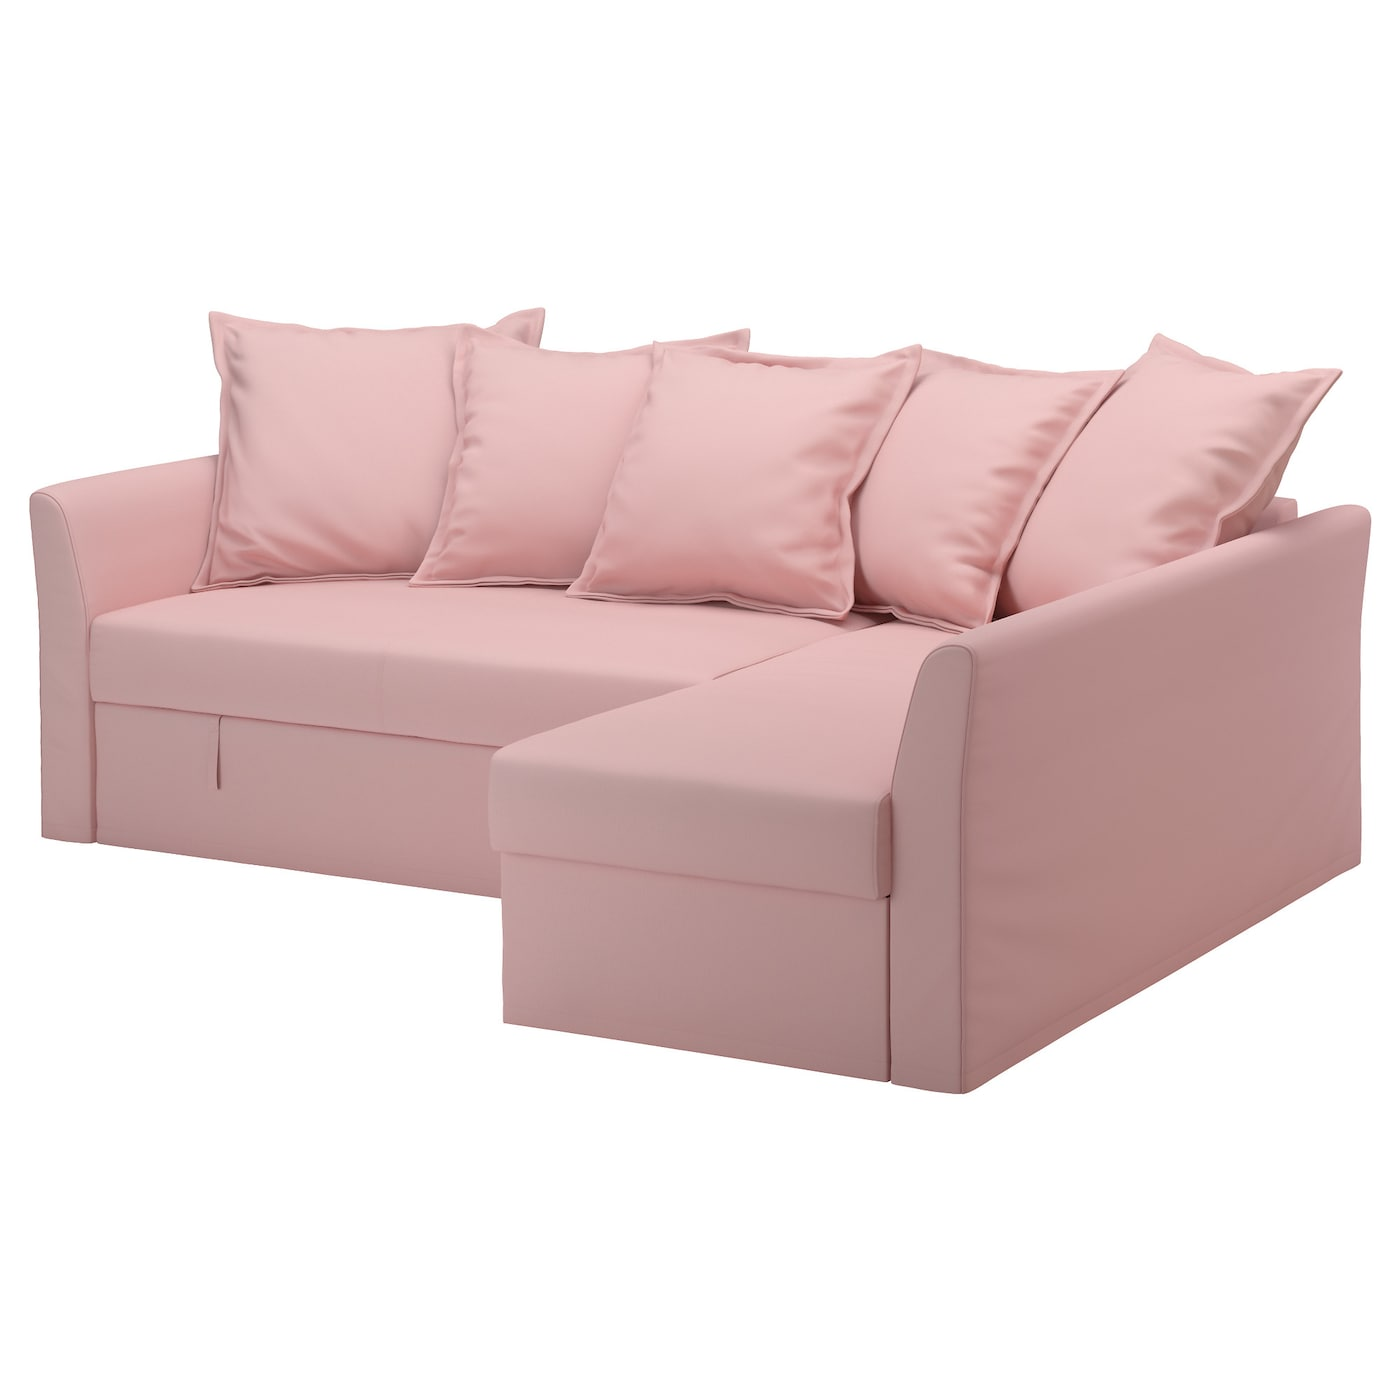 Sofa beds ikea ireland dublin for Ikea corner sofa